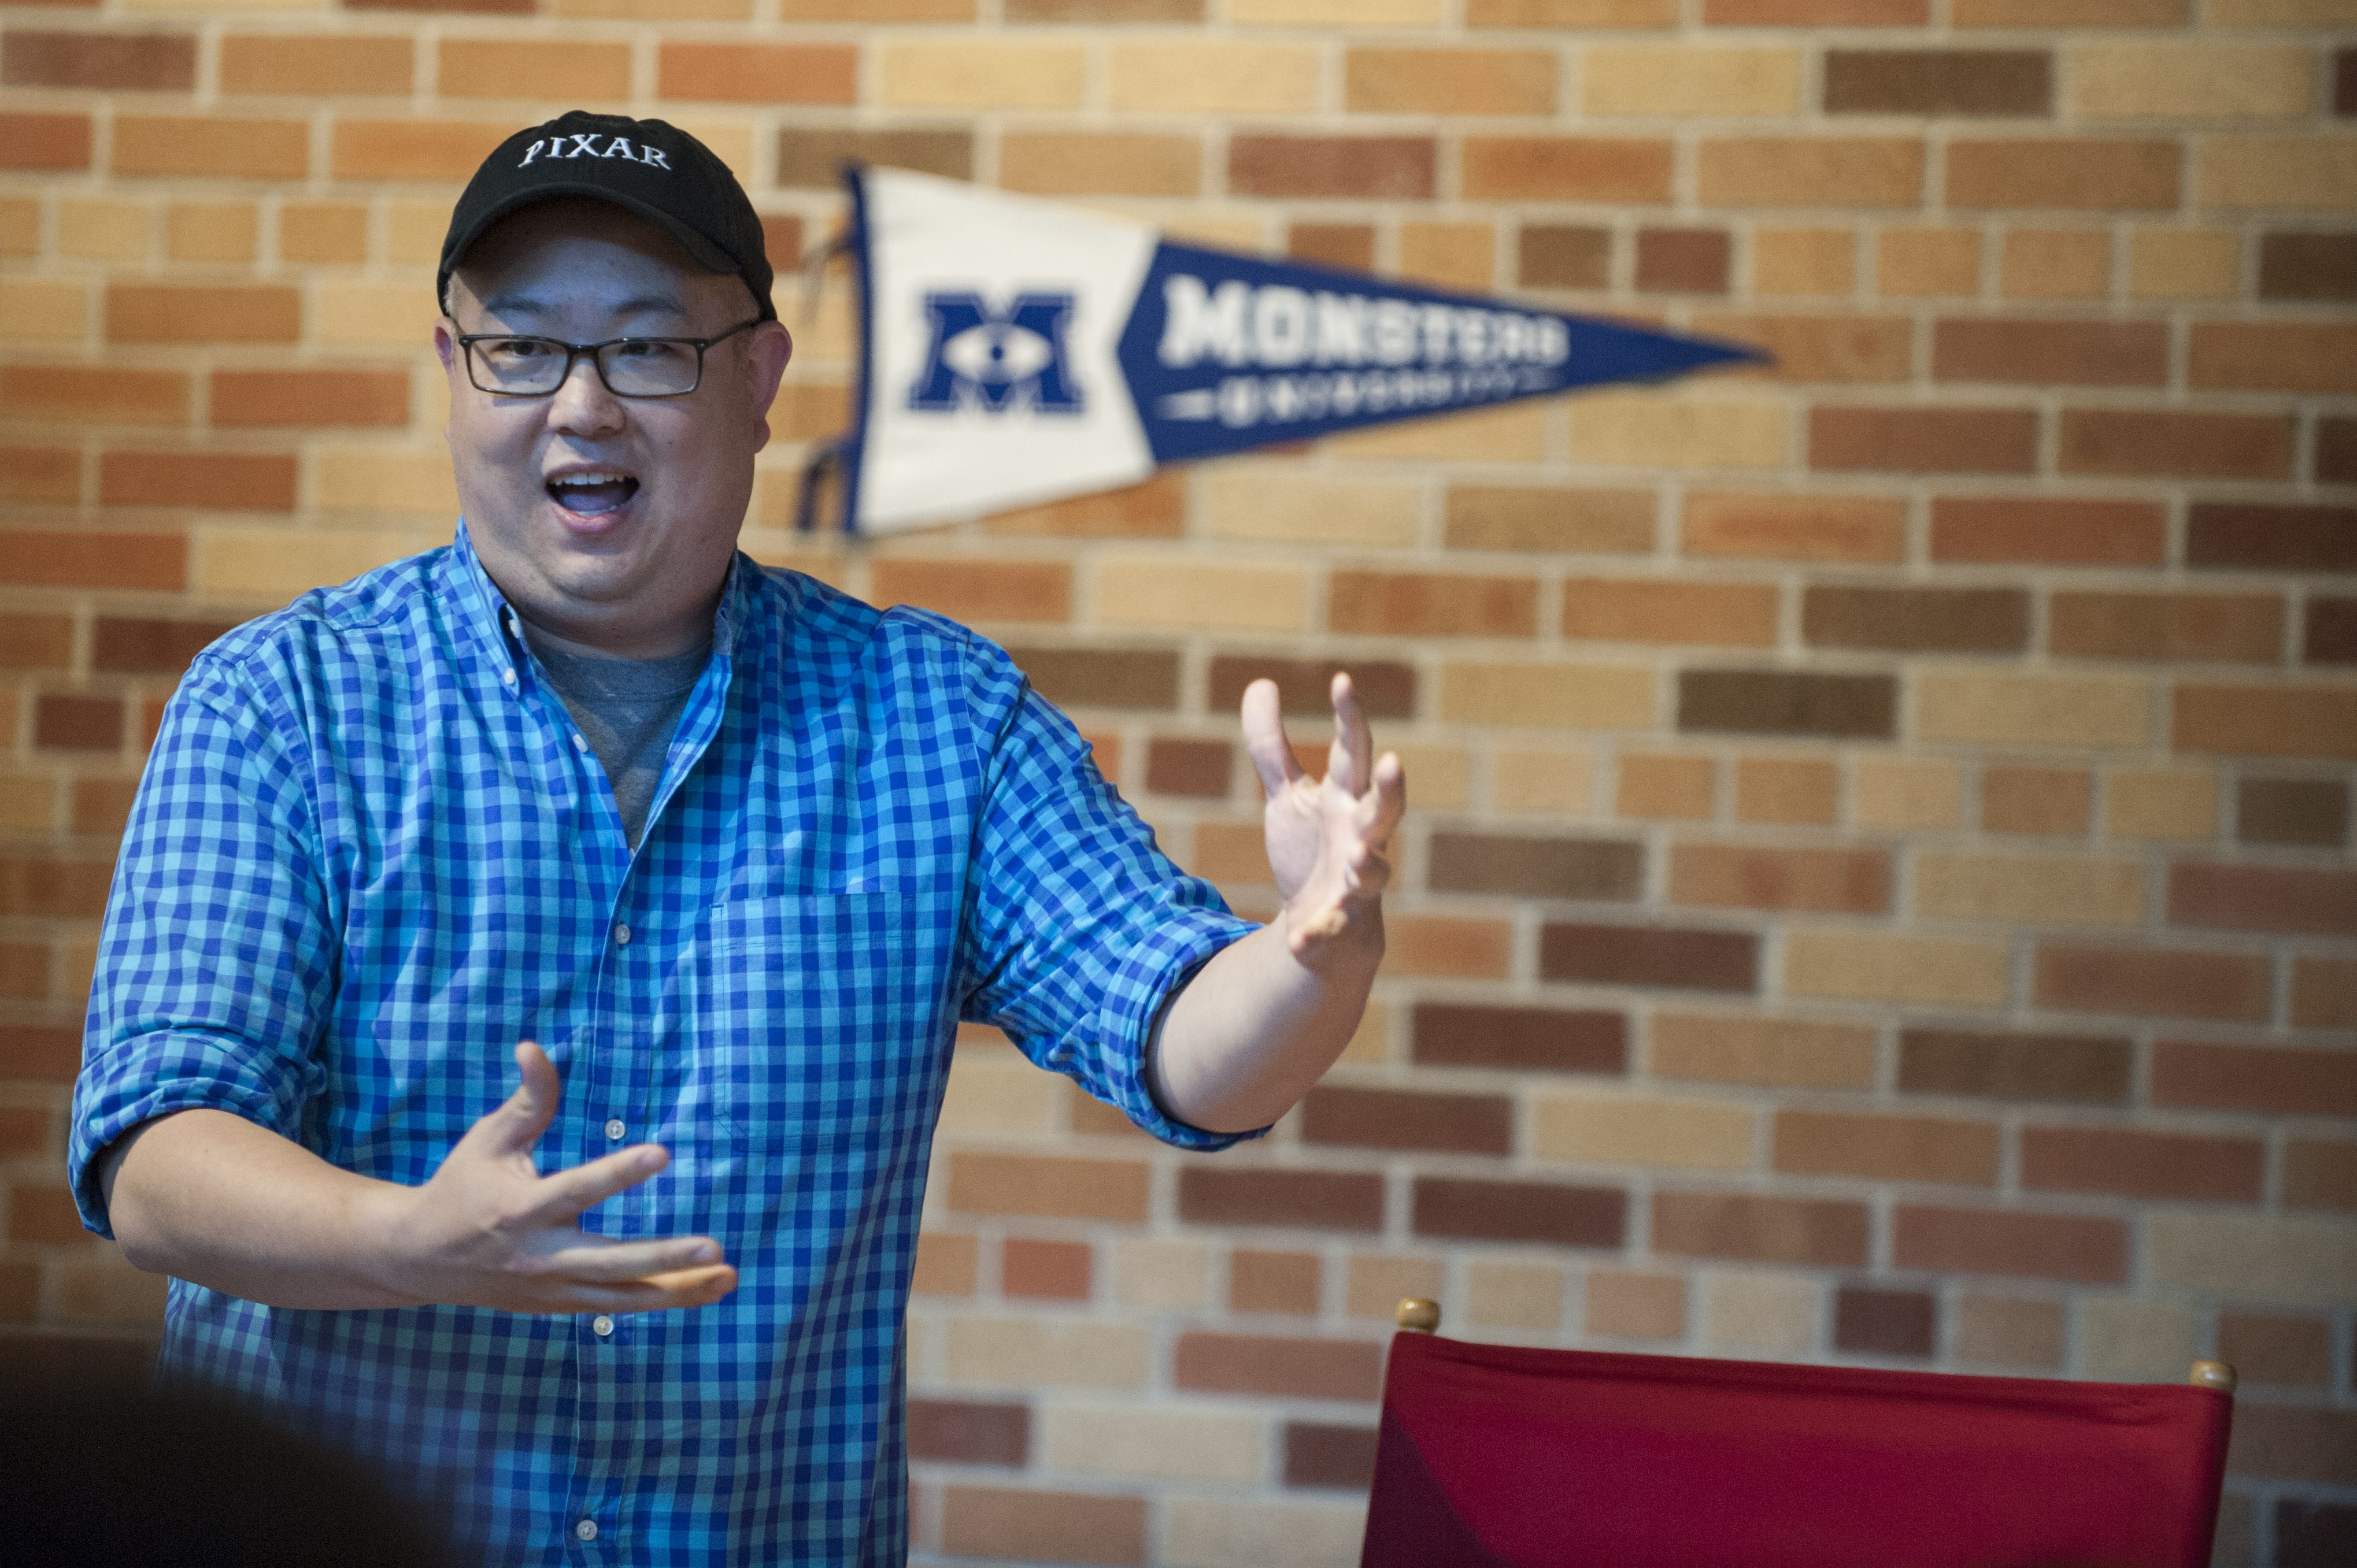 Peter Sohn Voice Of Squishy In Monsters University Proves Nice Guys Sometimes Do Finish First Geekdad